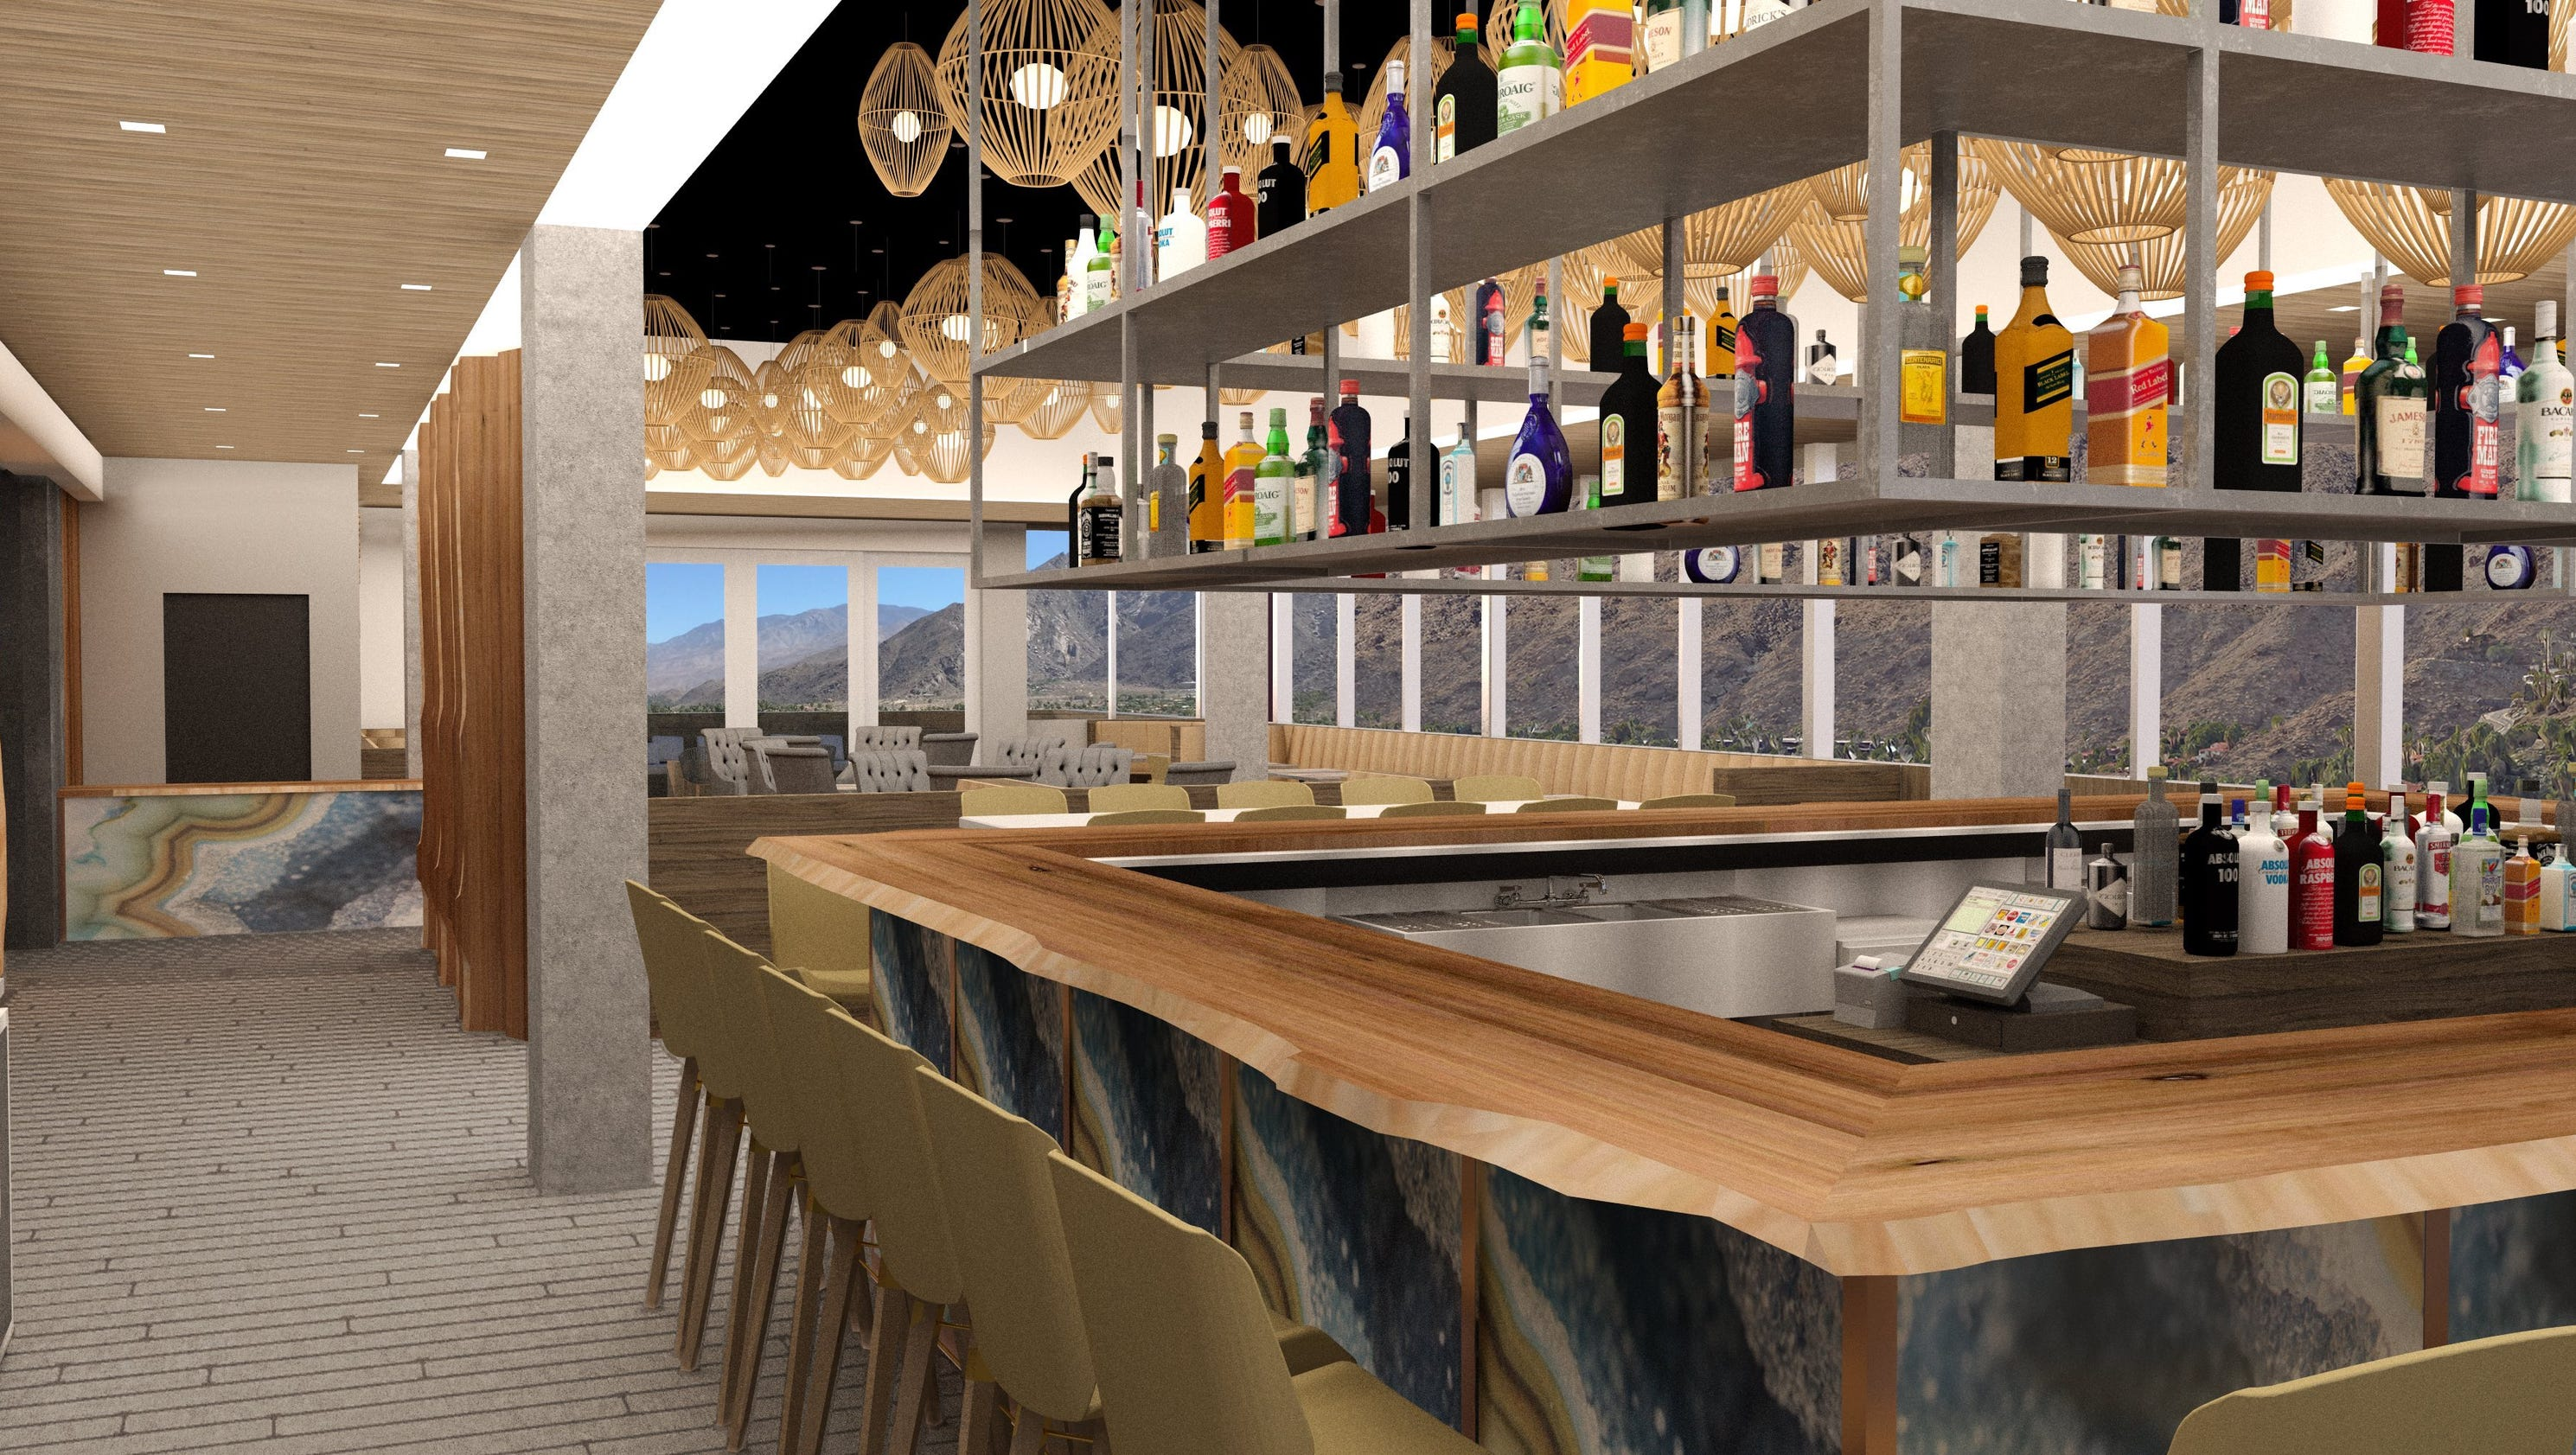 Two restaurants opening at the new kimpton hotel in palm for J s food bar 01708